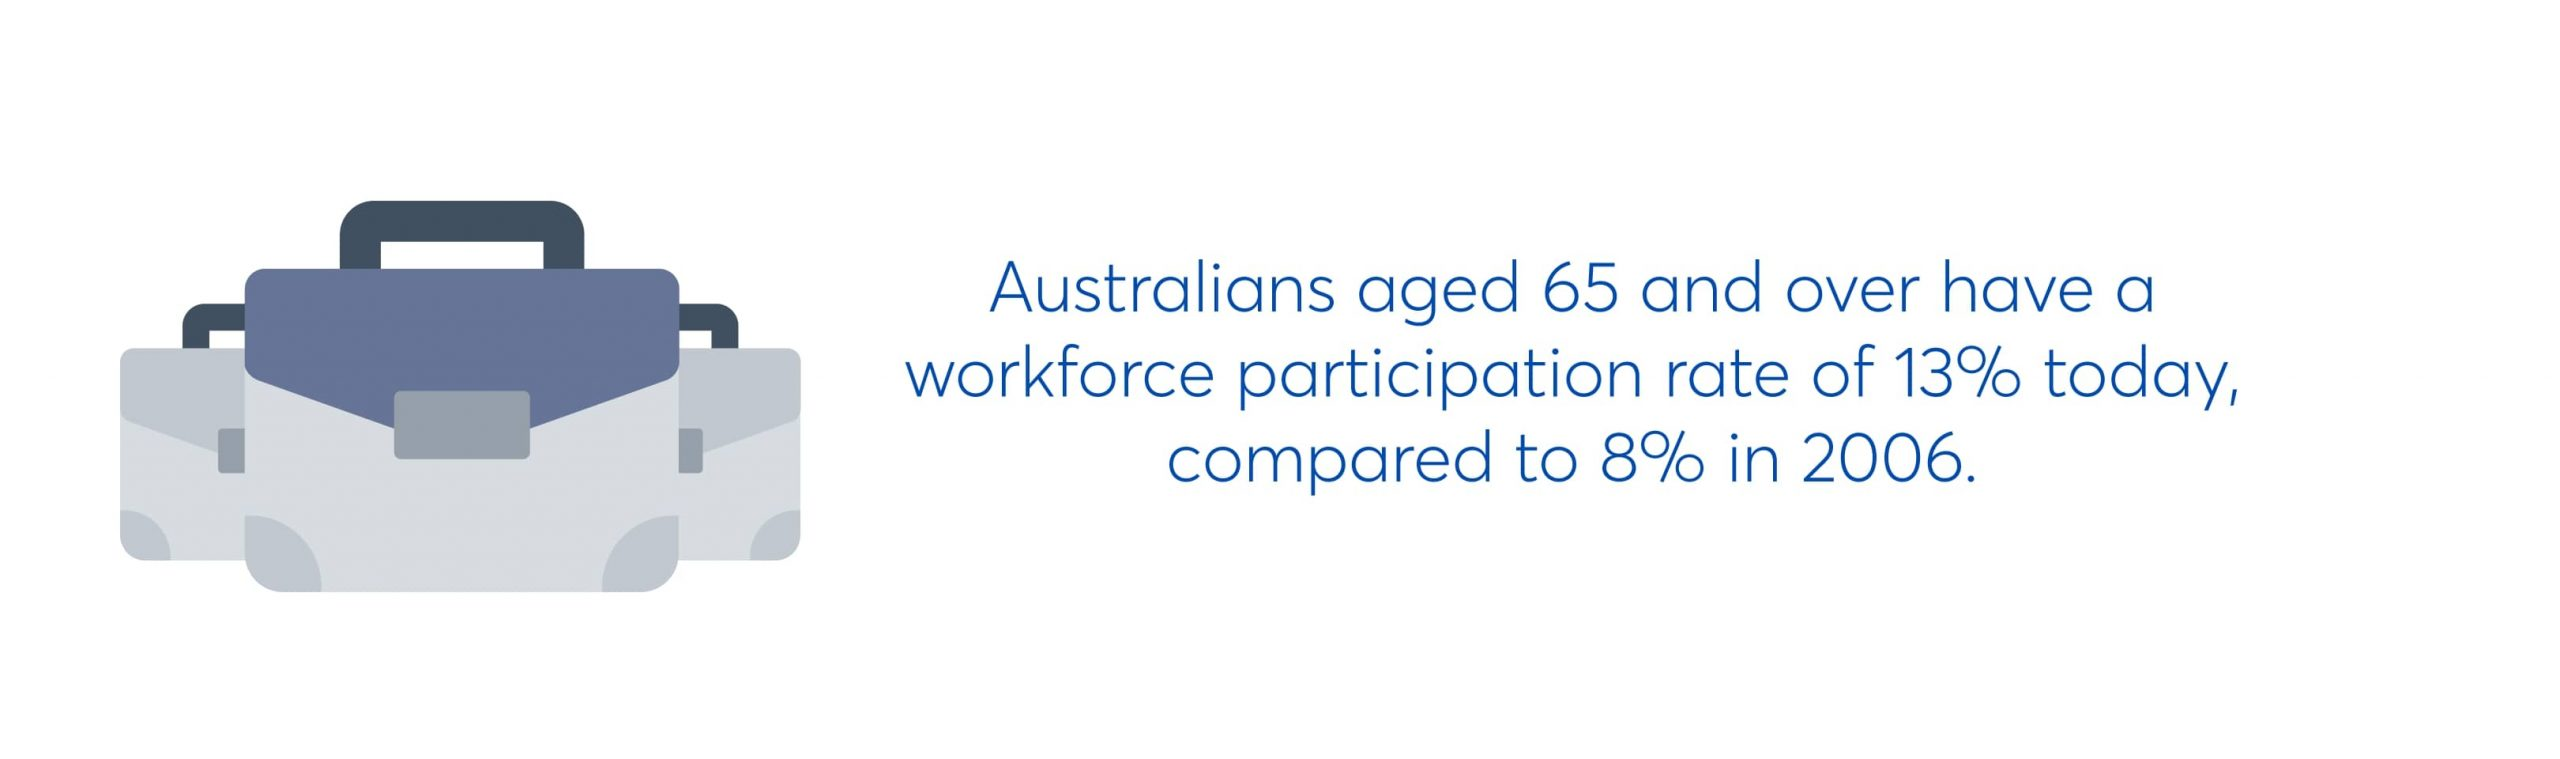 australians aged 65 and over have a workforce participation rate of 13% today, compared to 8% in 2006